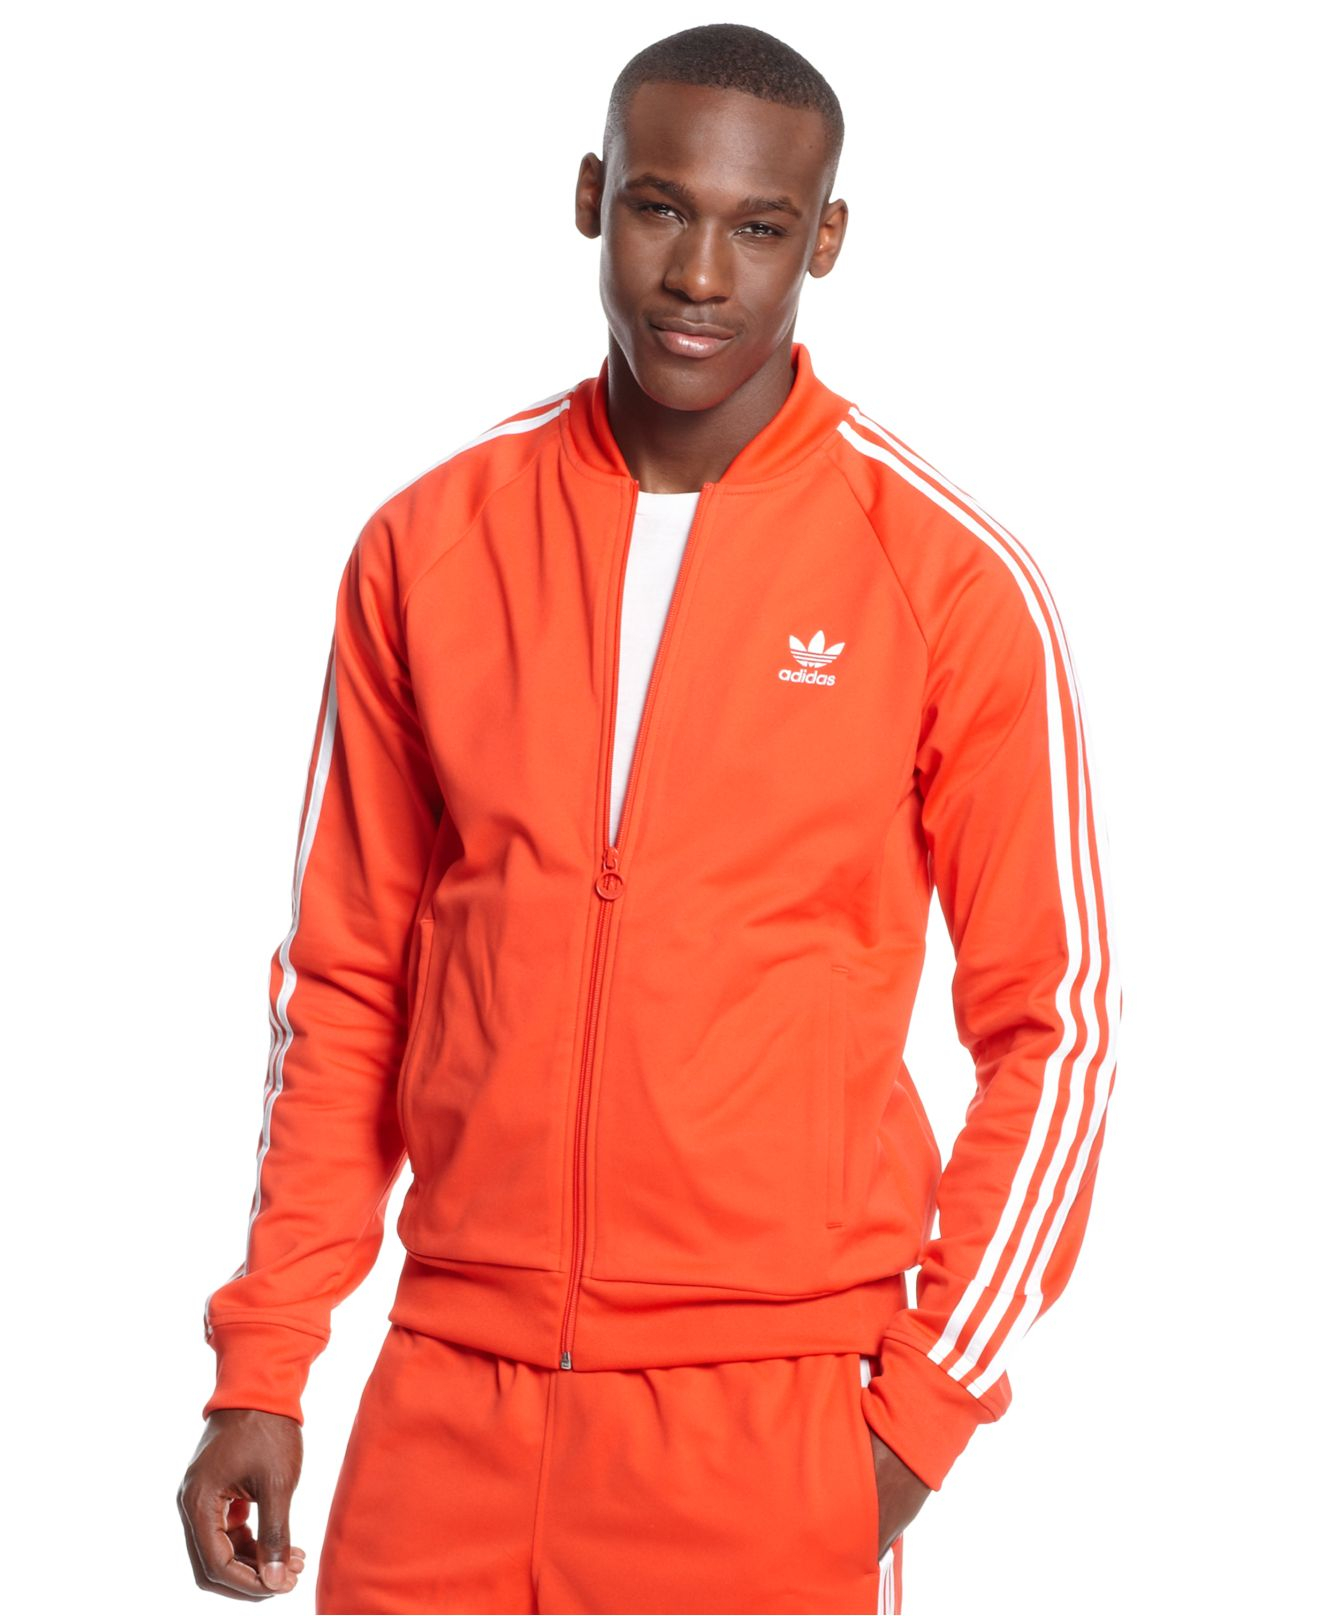 adidas mens superstar jacket red / white stripes